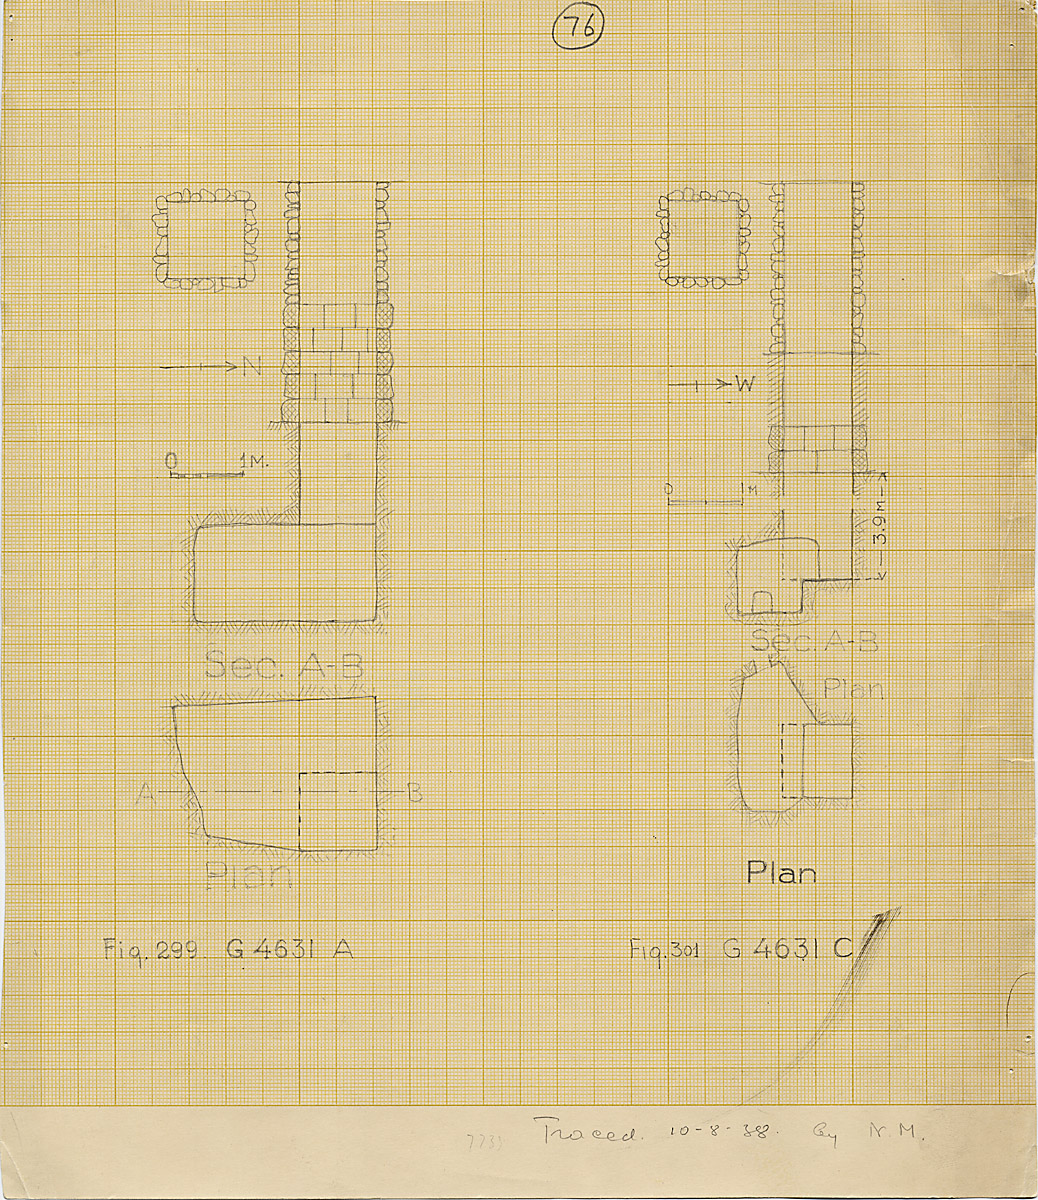 Maps and plans: G 4631, Shaft A and C